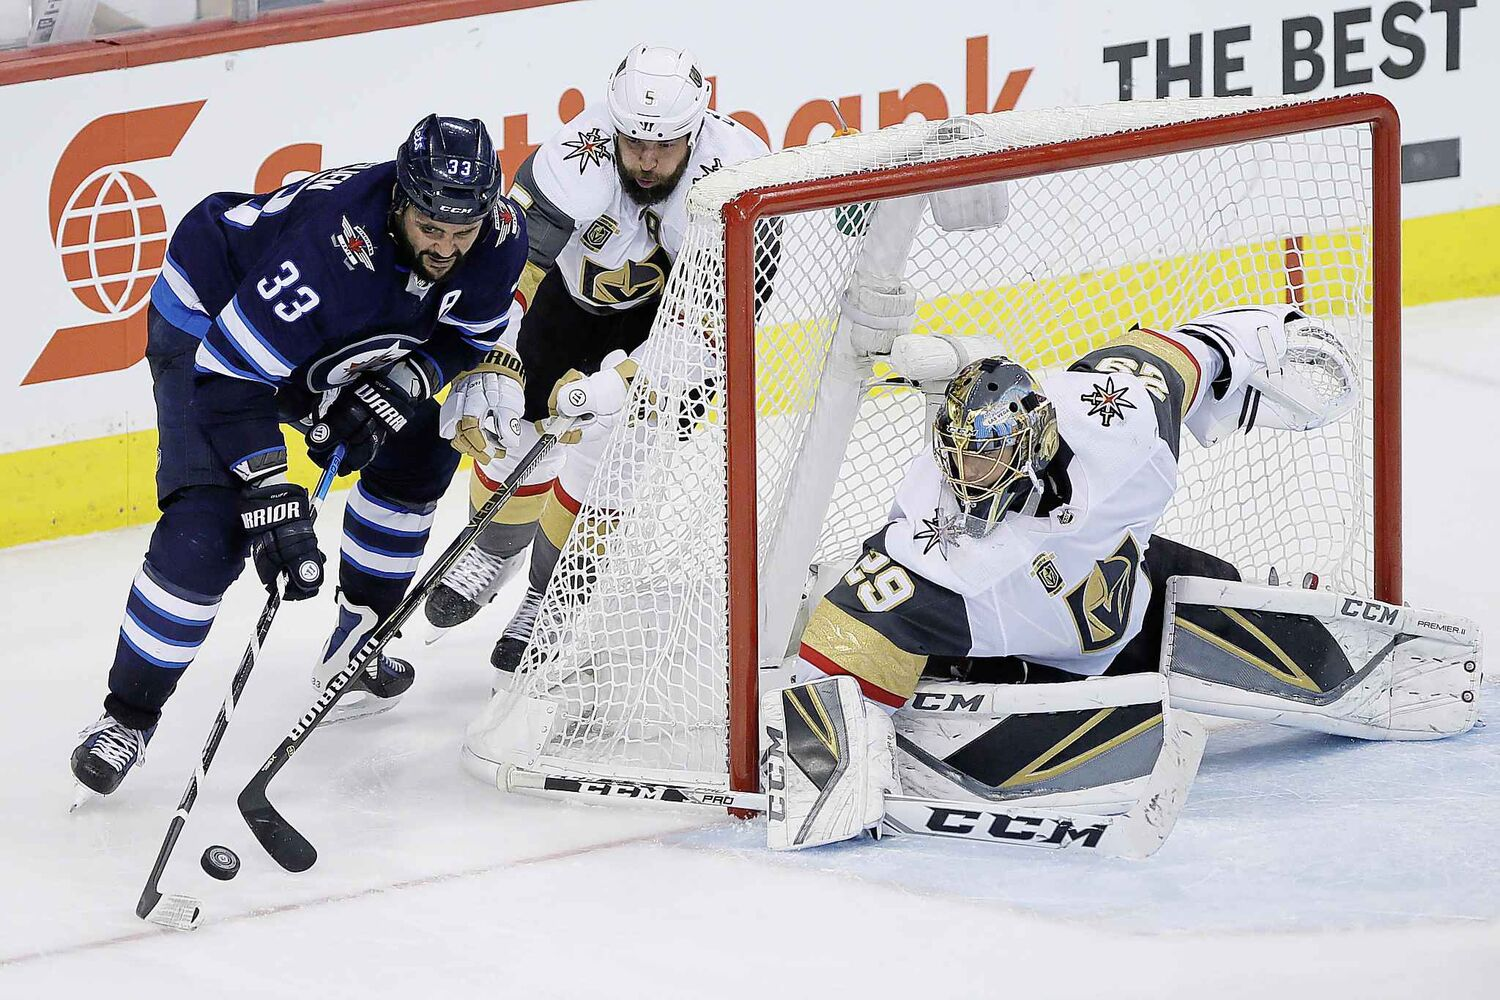 JOHN WOODS / THE CANADIAN PRESS</p><pWinnipeg Jets' Dustin Byfuglien (33) attempts the wraparound on Vegas Golden Knights� Deryk Engelland (5) and goaltender Marc-Andre Fleury (29) during third period of game one action in the NHL Western Conference Final in Winnipeg on Saturday, May 12, 2018.</p>